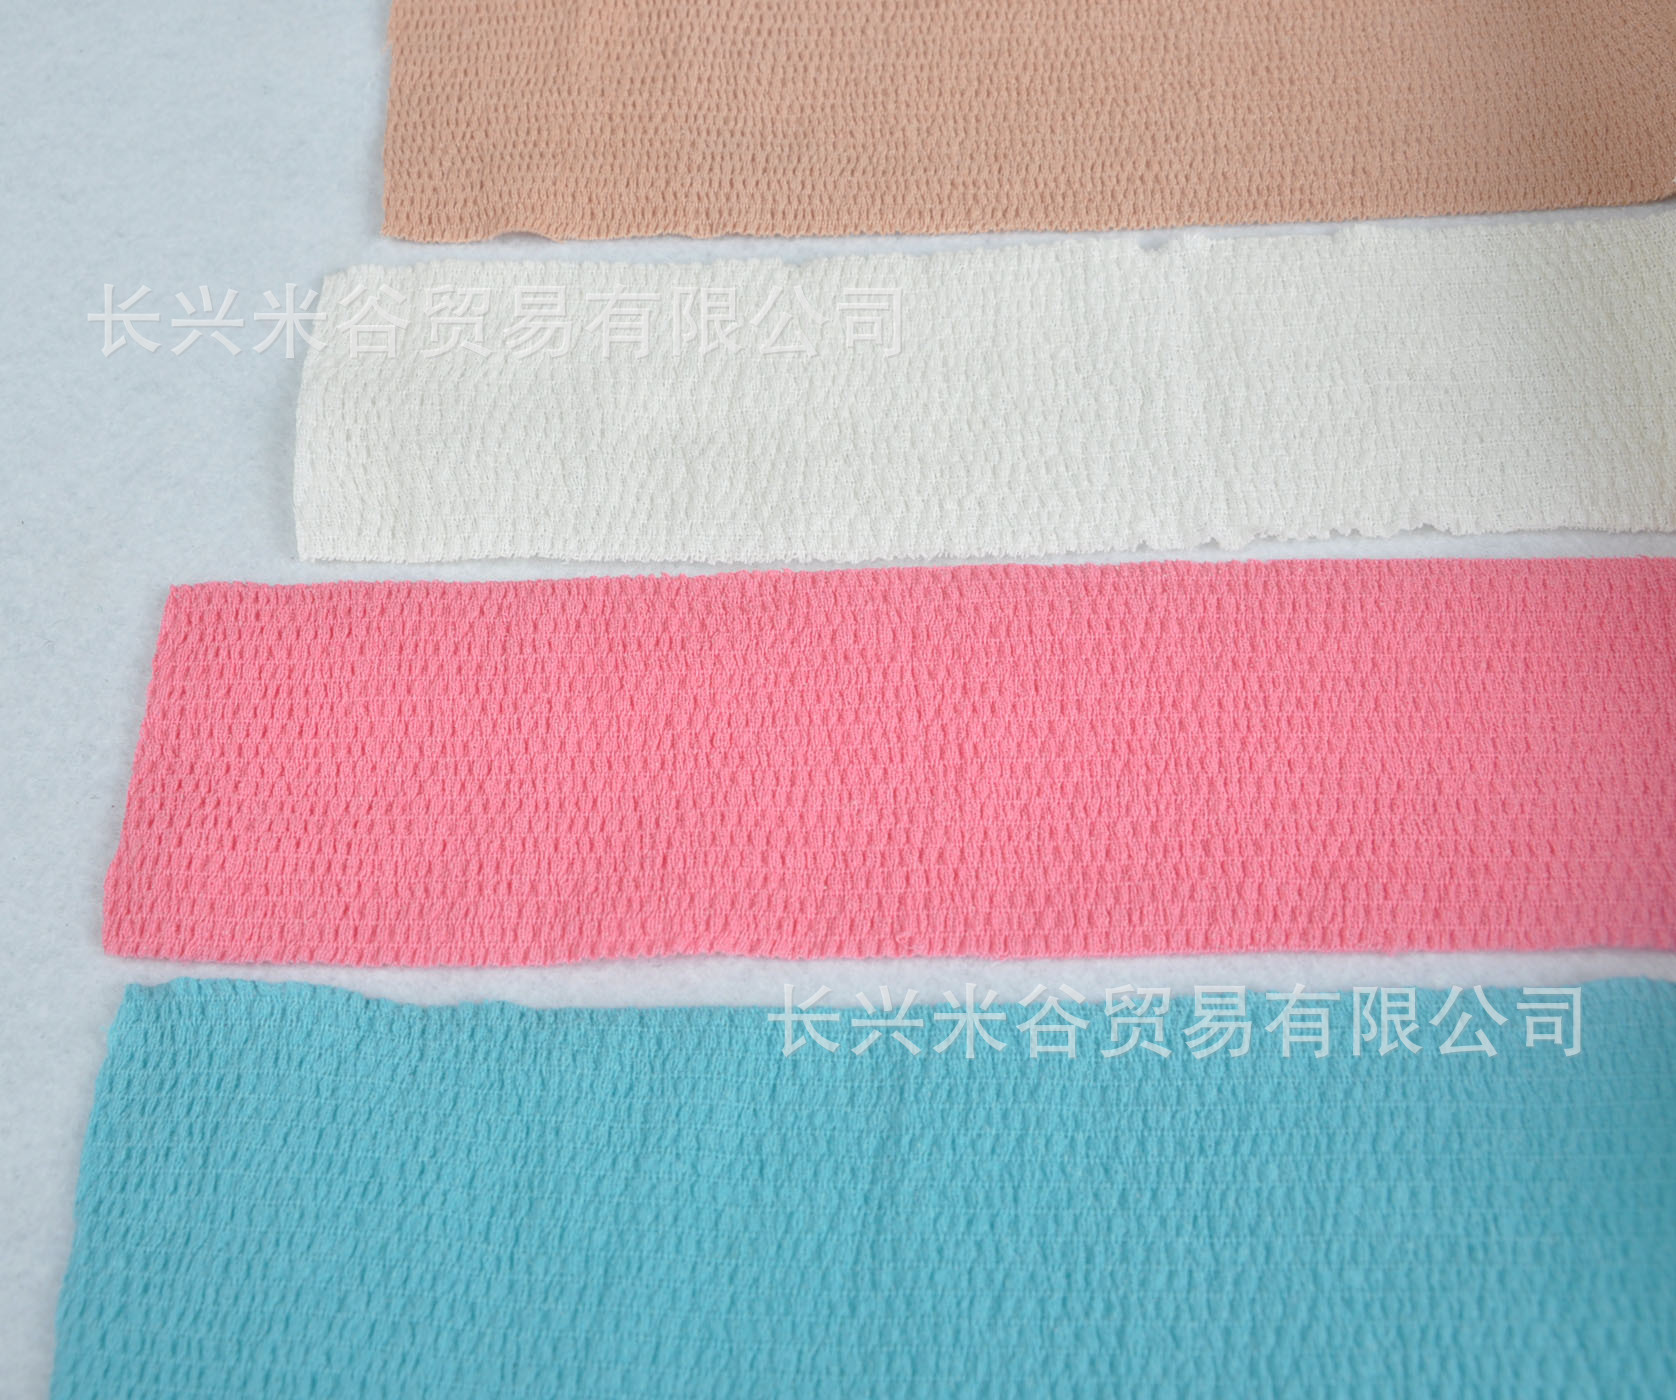 7.5 Cm Cotton Self-adhesive Bandage Cotton Pure Cotton Self-adhesive Bandage Sports Protective Bandage Polymer Self-Adhesive